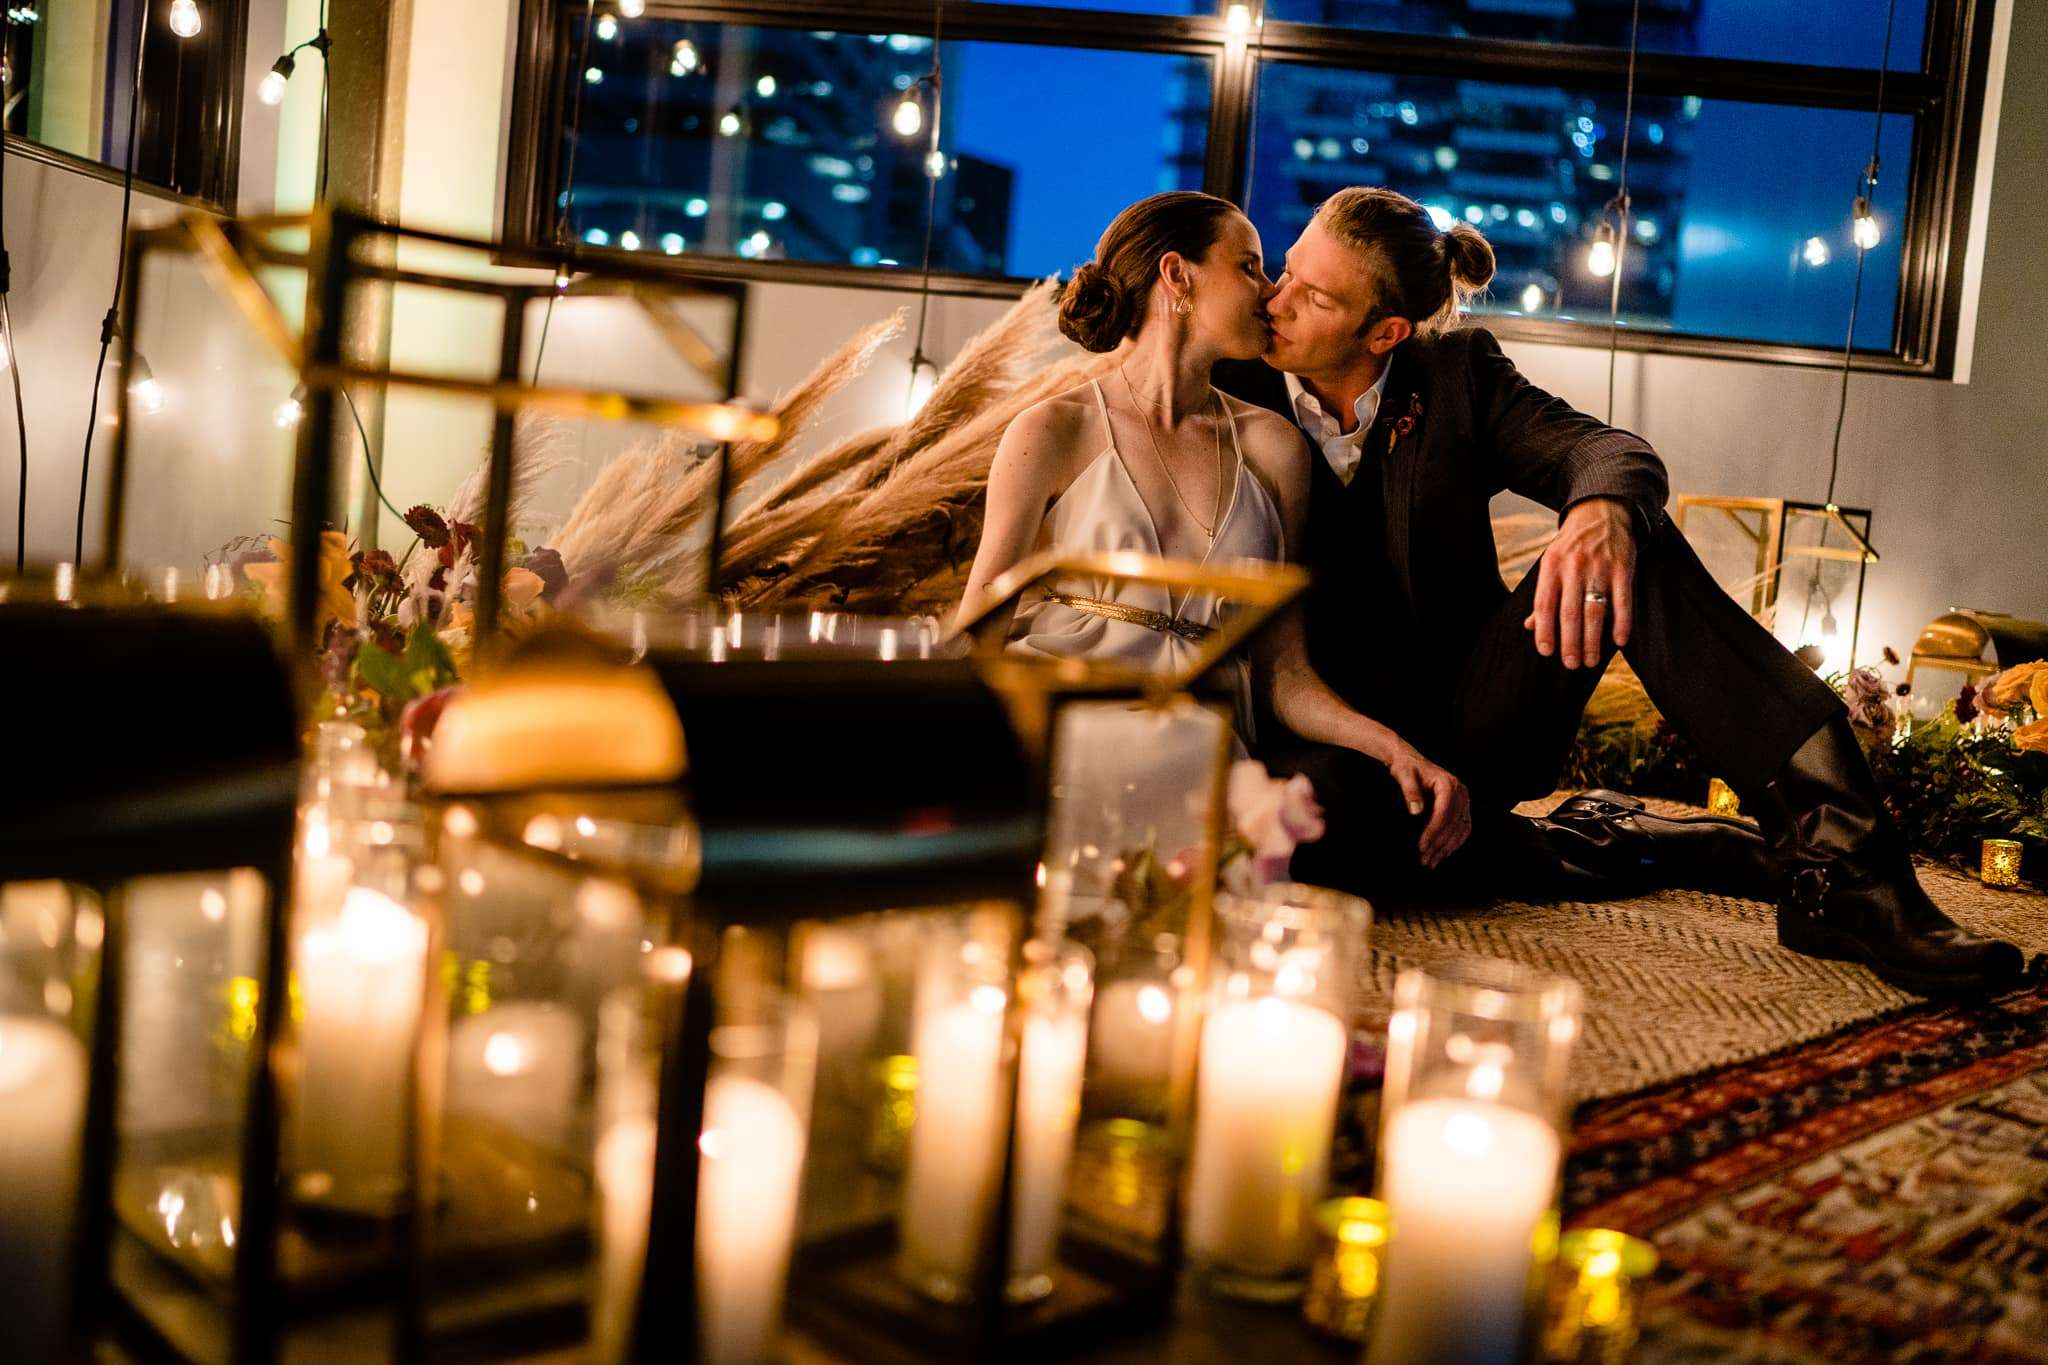 downtown austin elopement number one austin wedding photographer night photography the riley building